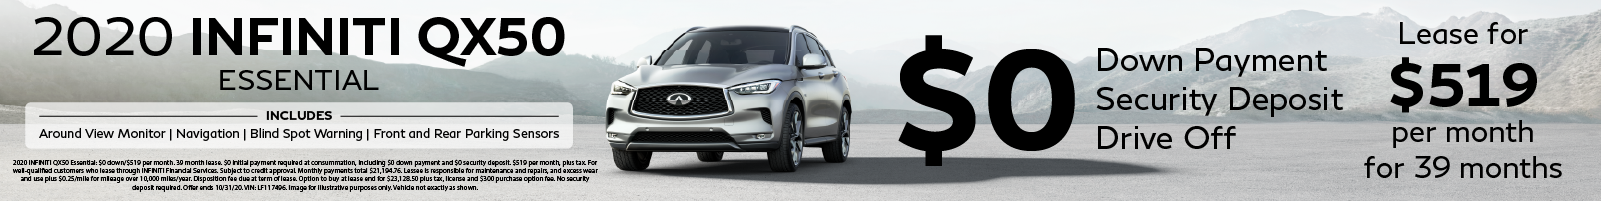 Lease a 2020 QX50 Essential for $519 per month for 39 months with 0 down!